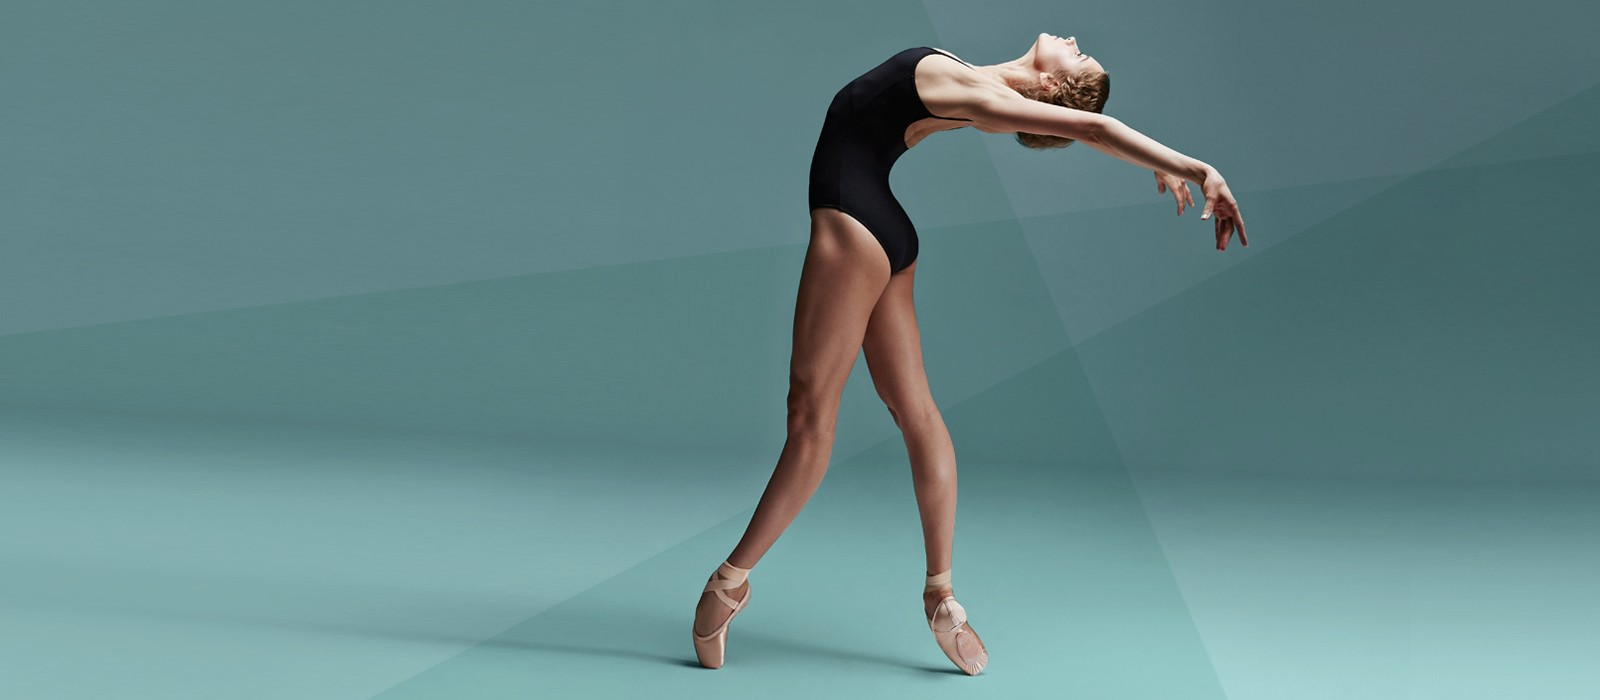 image - Discover our revolutionary stretch pointe shoes.